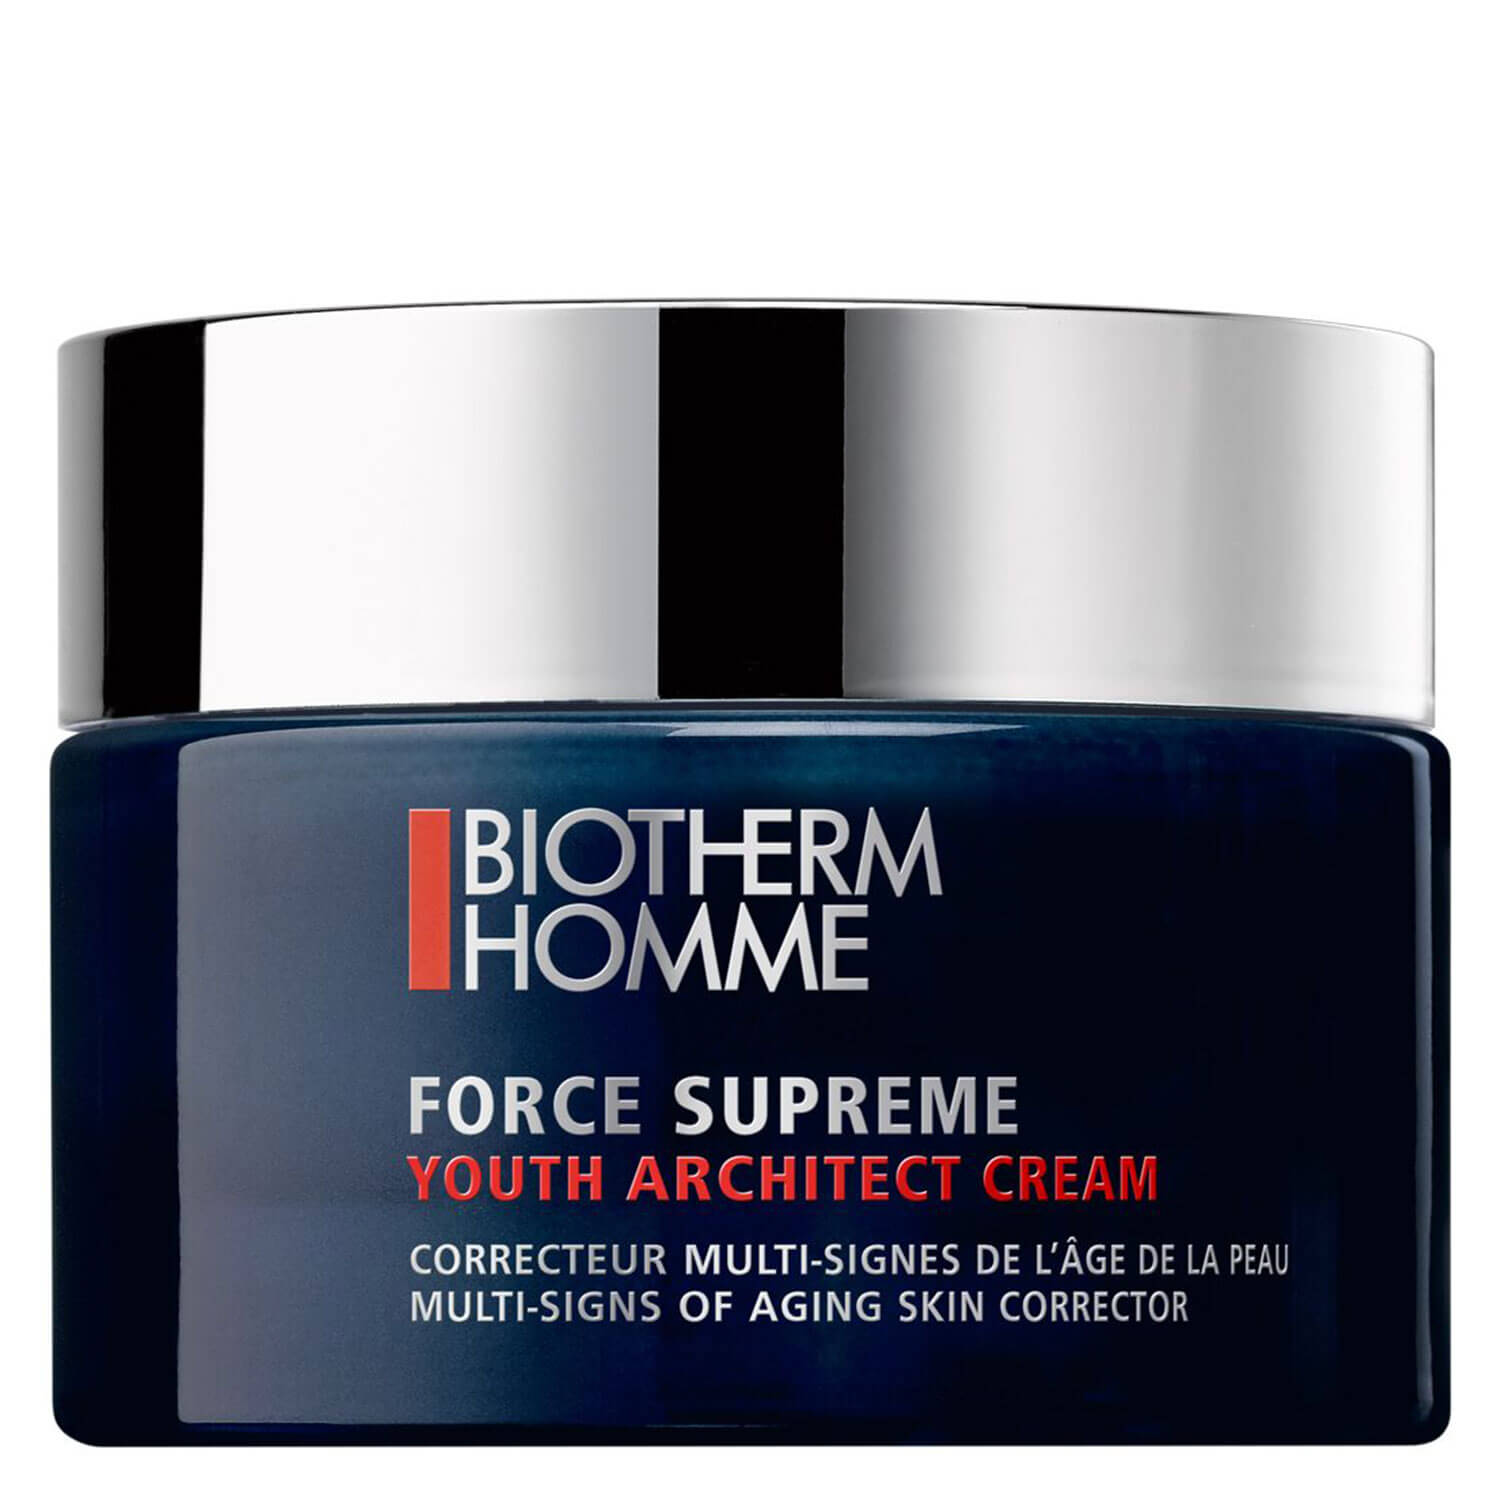 Biotherm Homme - Force Supreme Youth Architect Cream Anti-Age